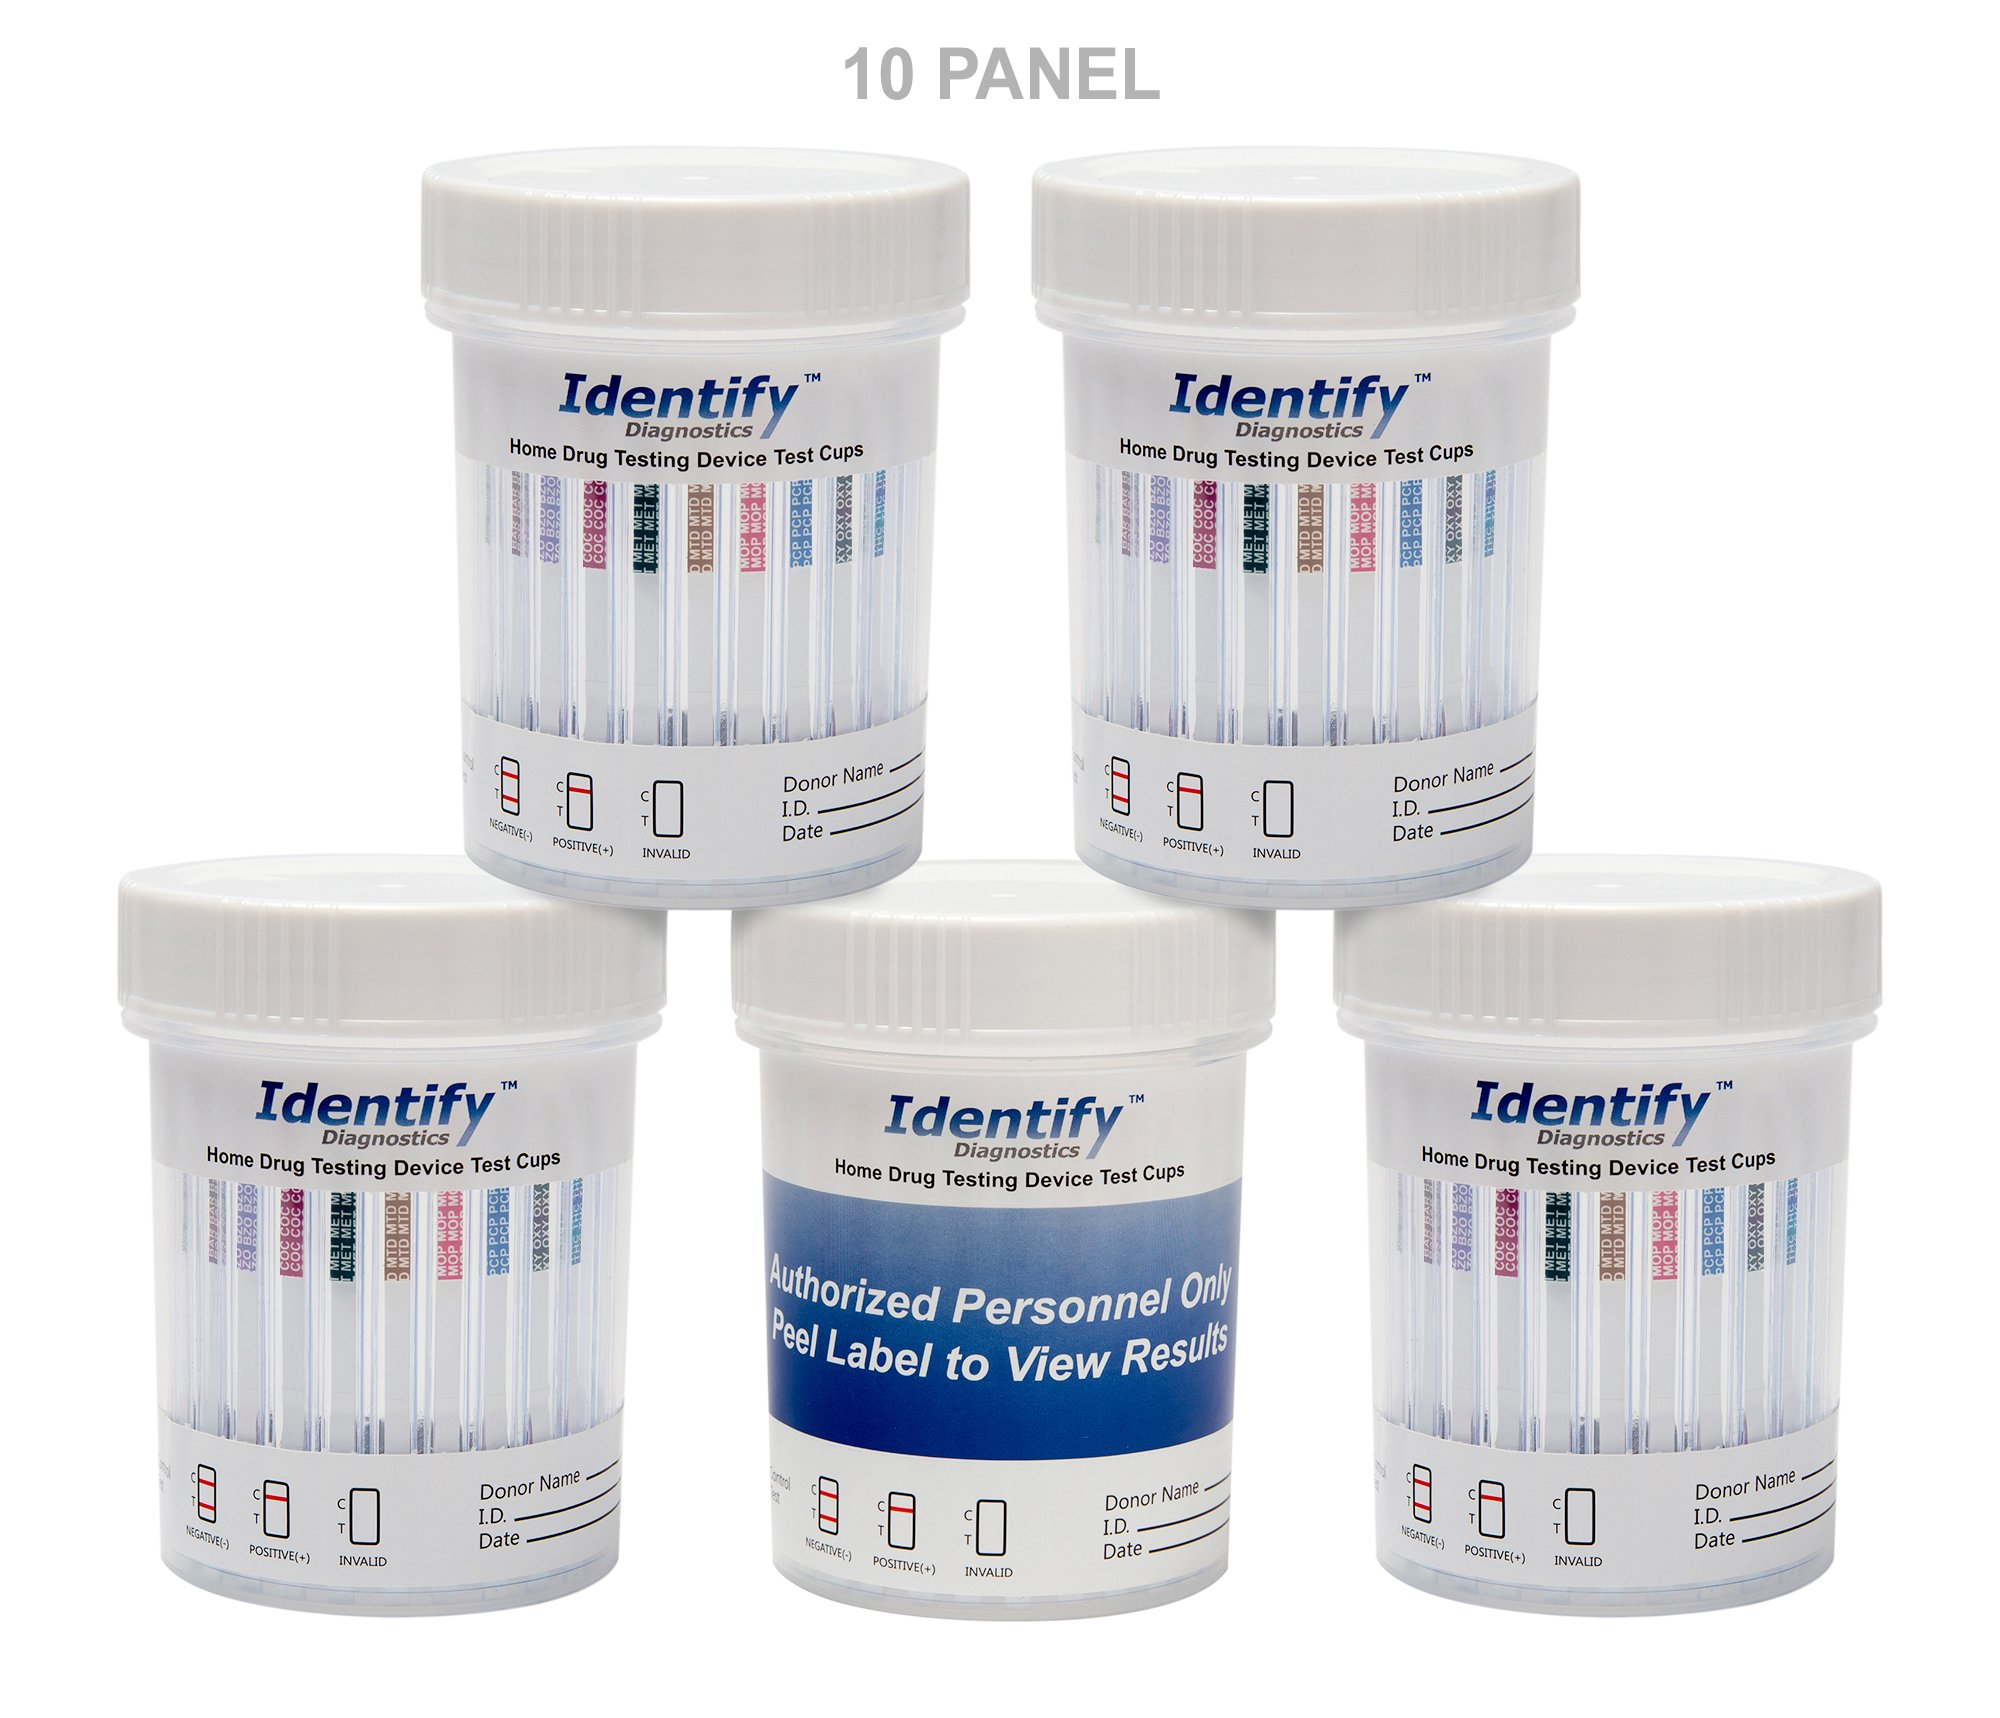 50 Pack Identify Diagnostics 10 Panel Drug Test Cup Testing Instantly for 10 Different Drugs: (THC), (COC), (OXY), (MOP), (AMP), (BAR), (BZO), (MET), (MTD), (PCP) #ID-CP10-AZ (50)